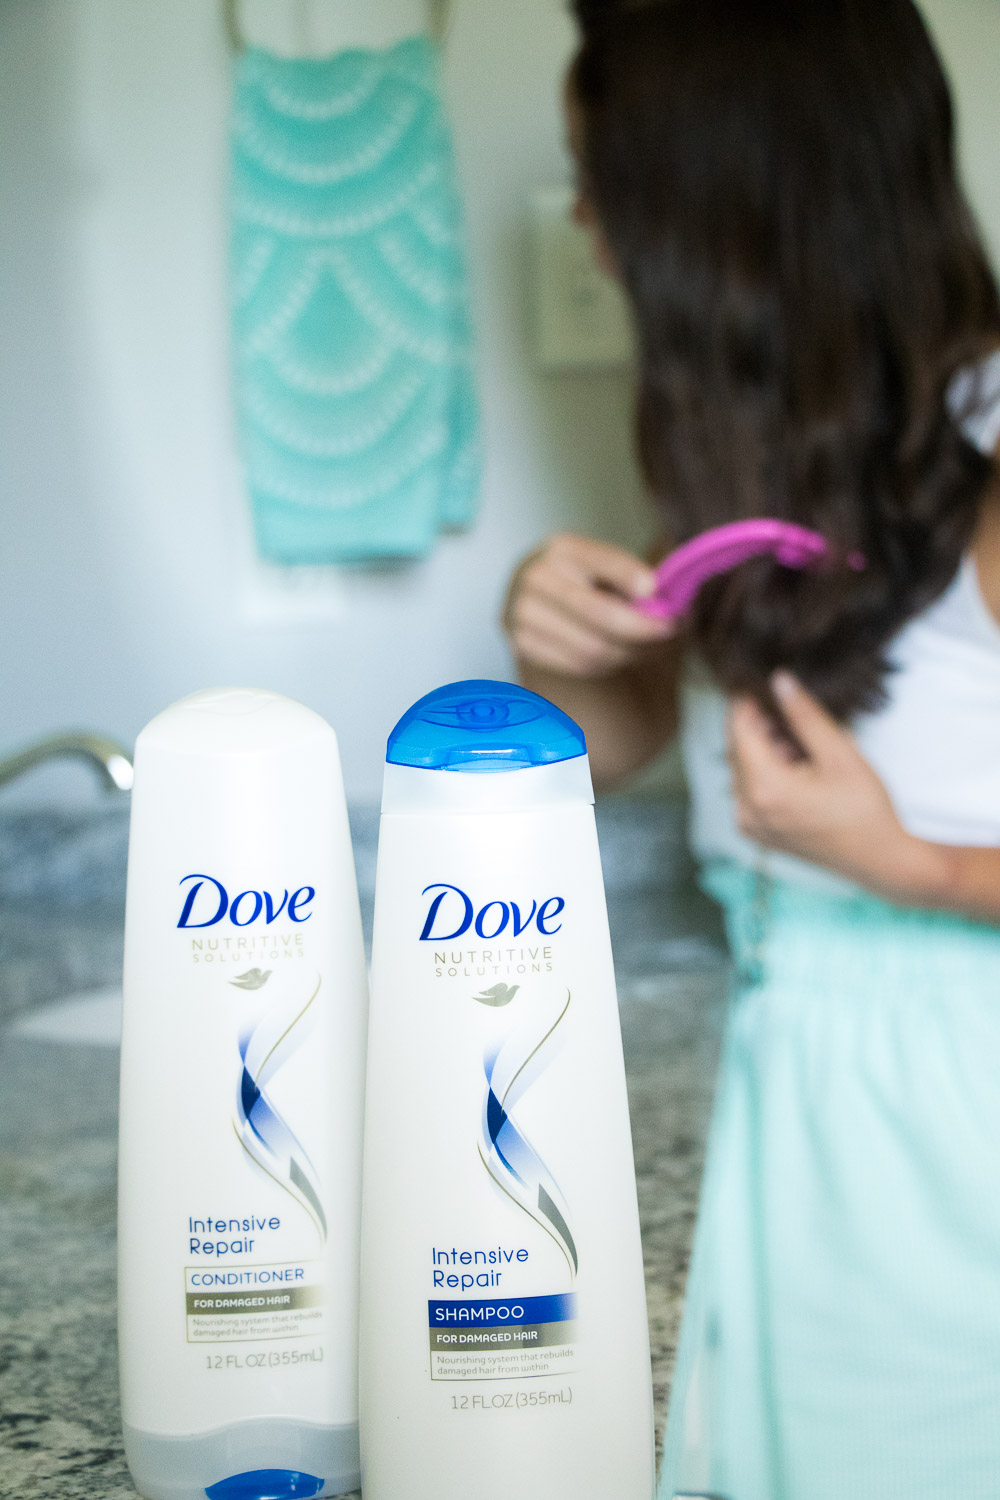 Dove Intensive Repair Shampoo and Conditioner